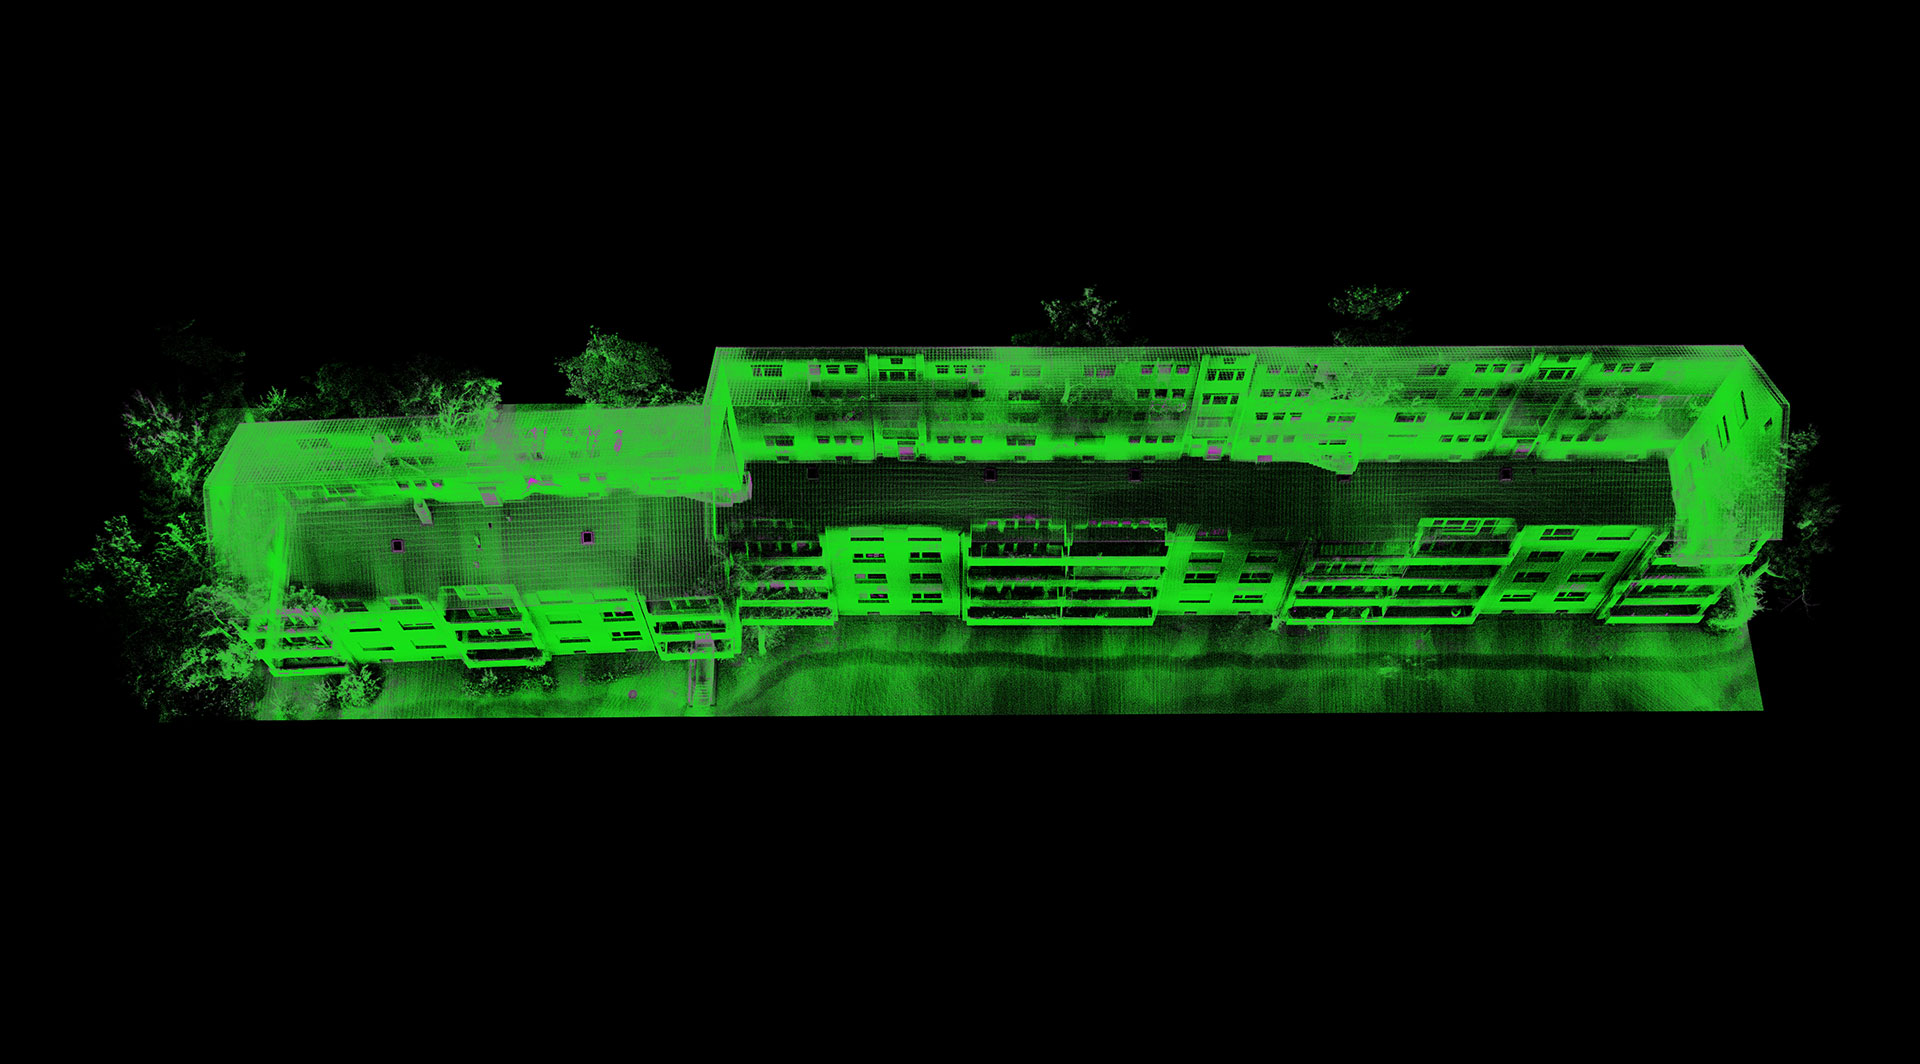 Point cloud of building in green colour